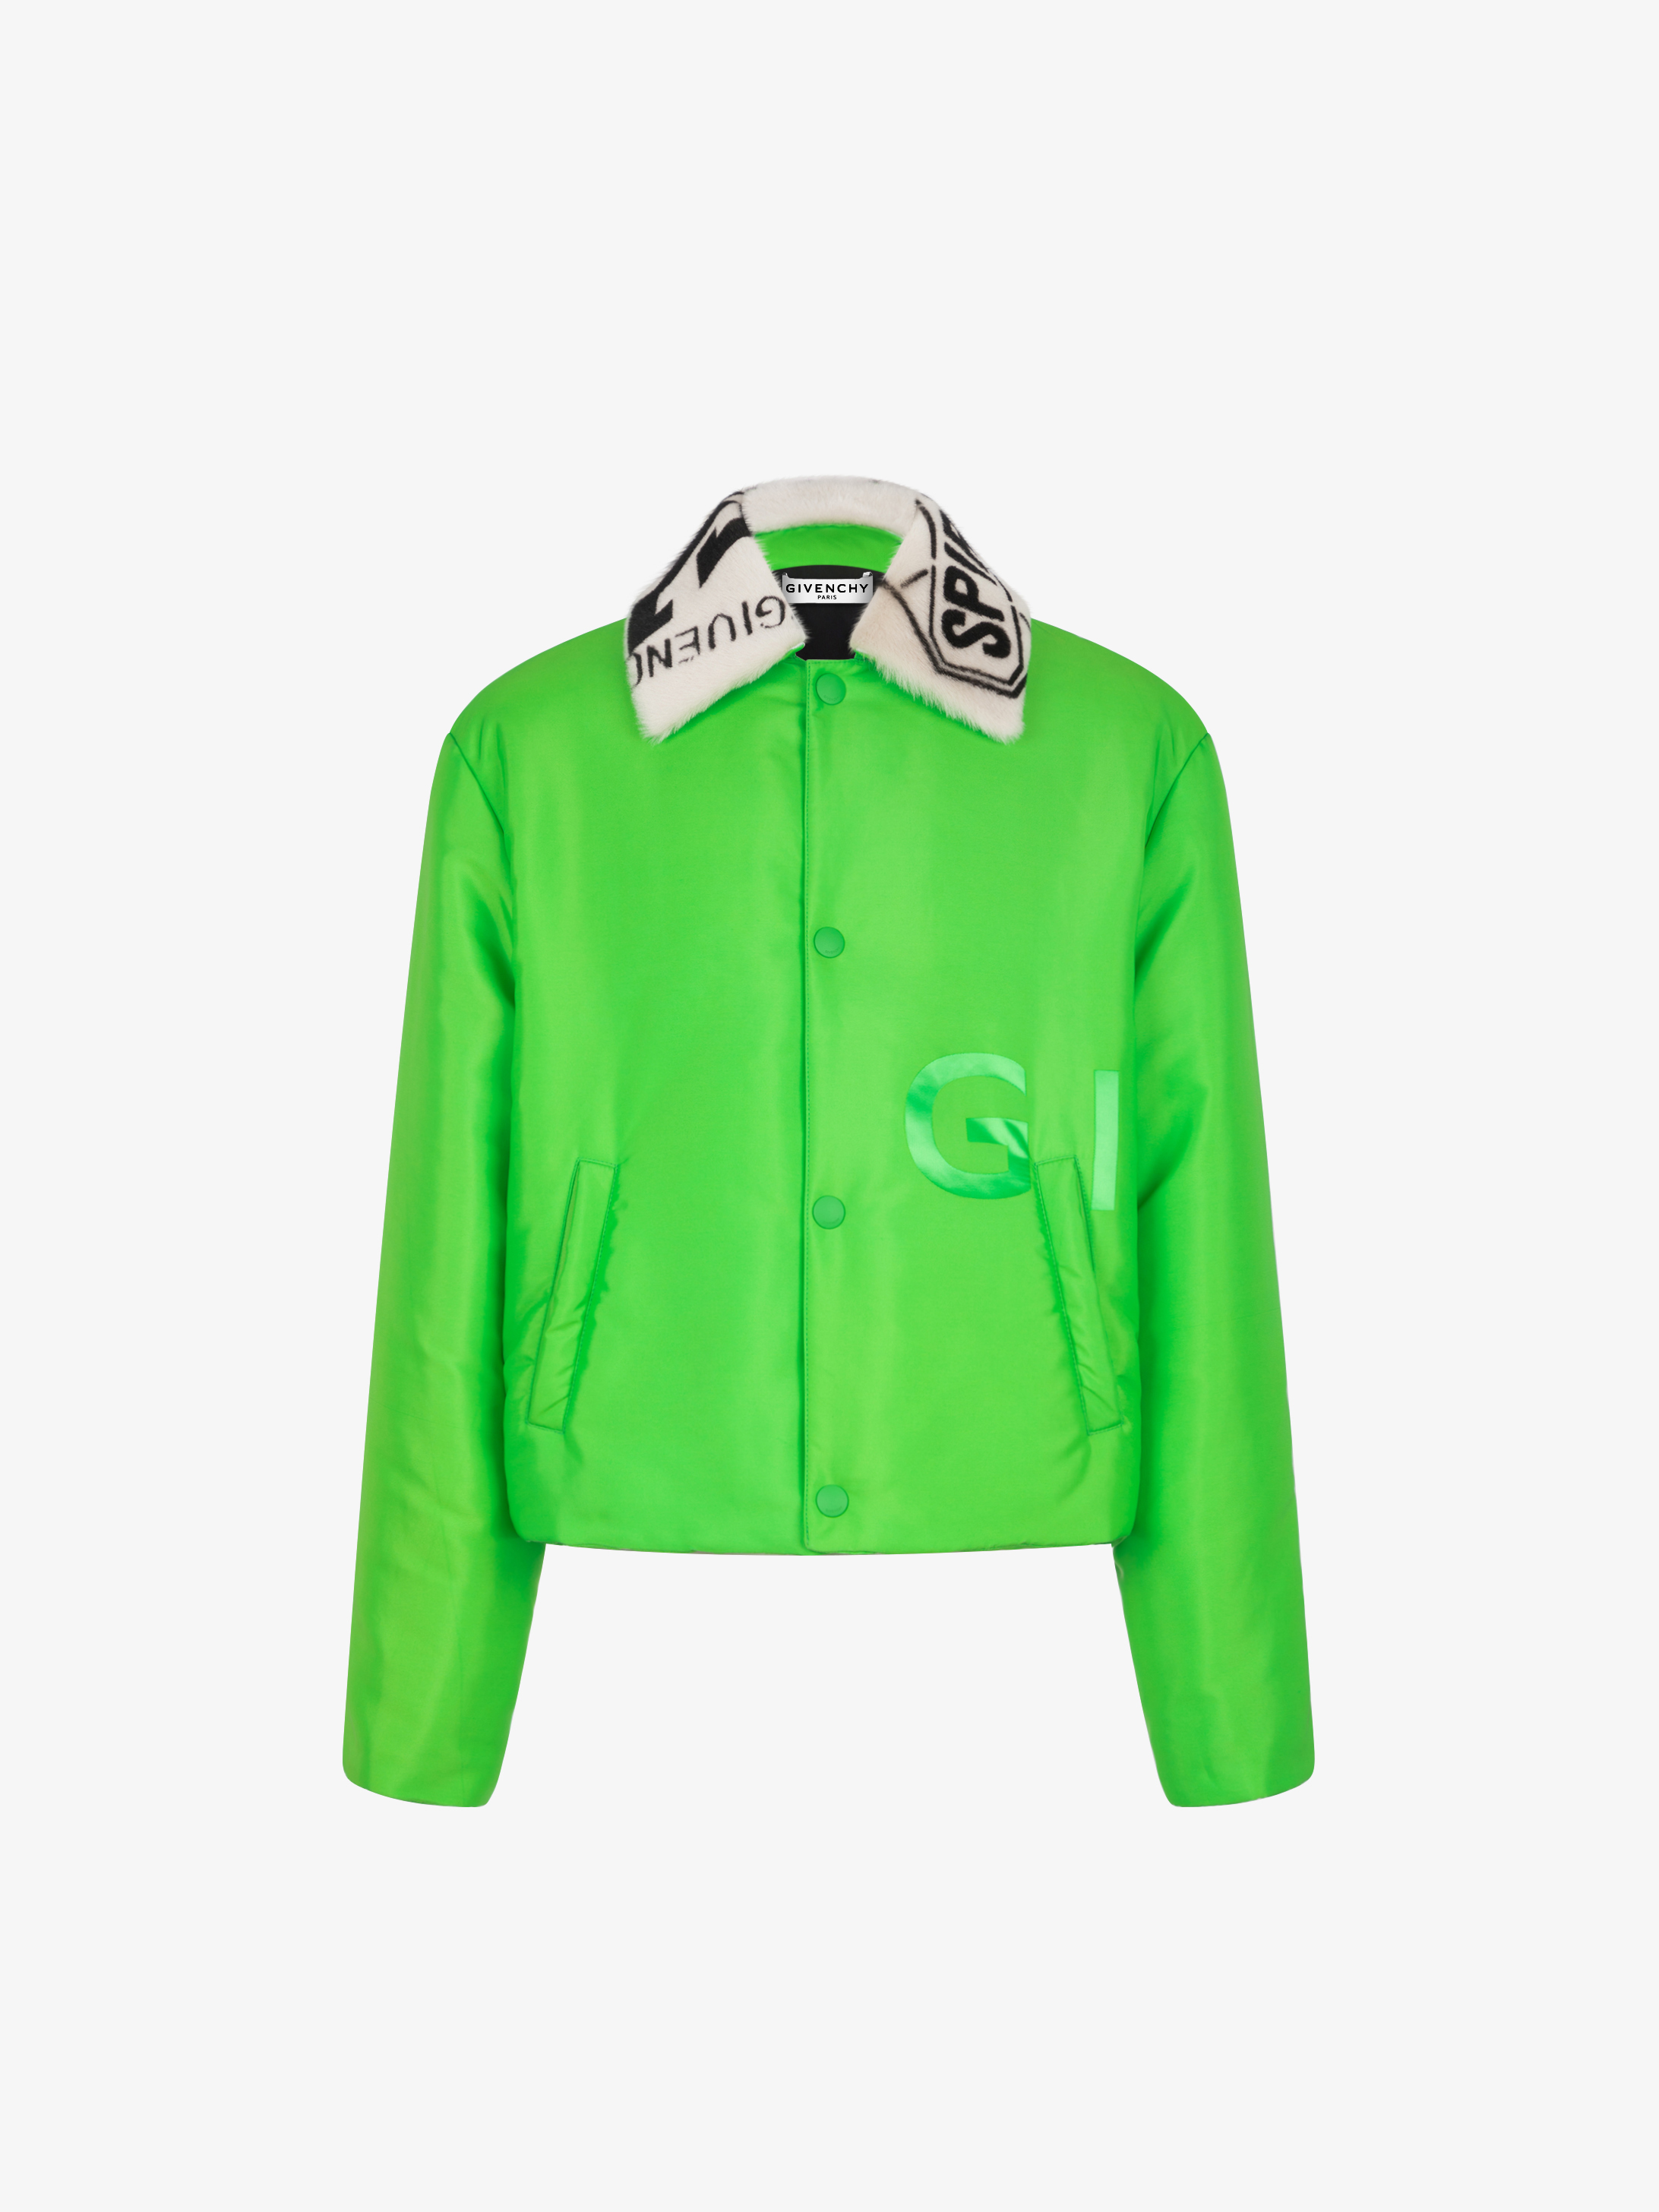 GIVENCHY jacket with collar in sheep lining